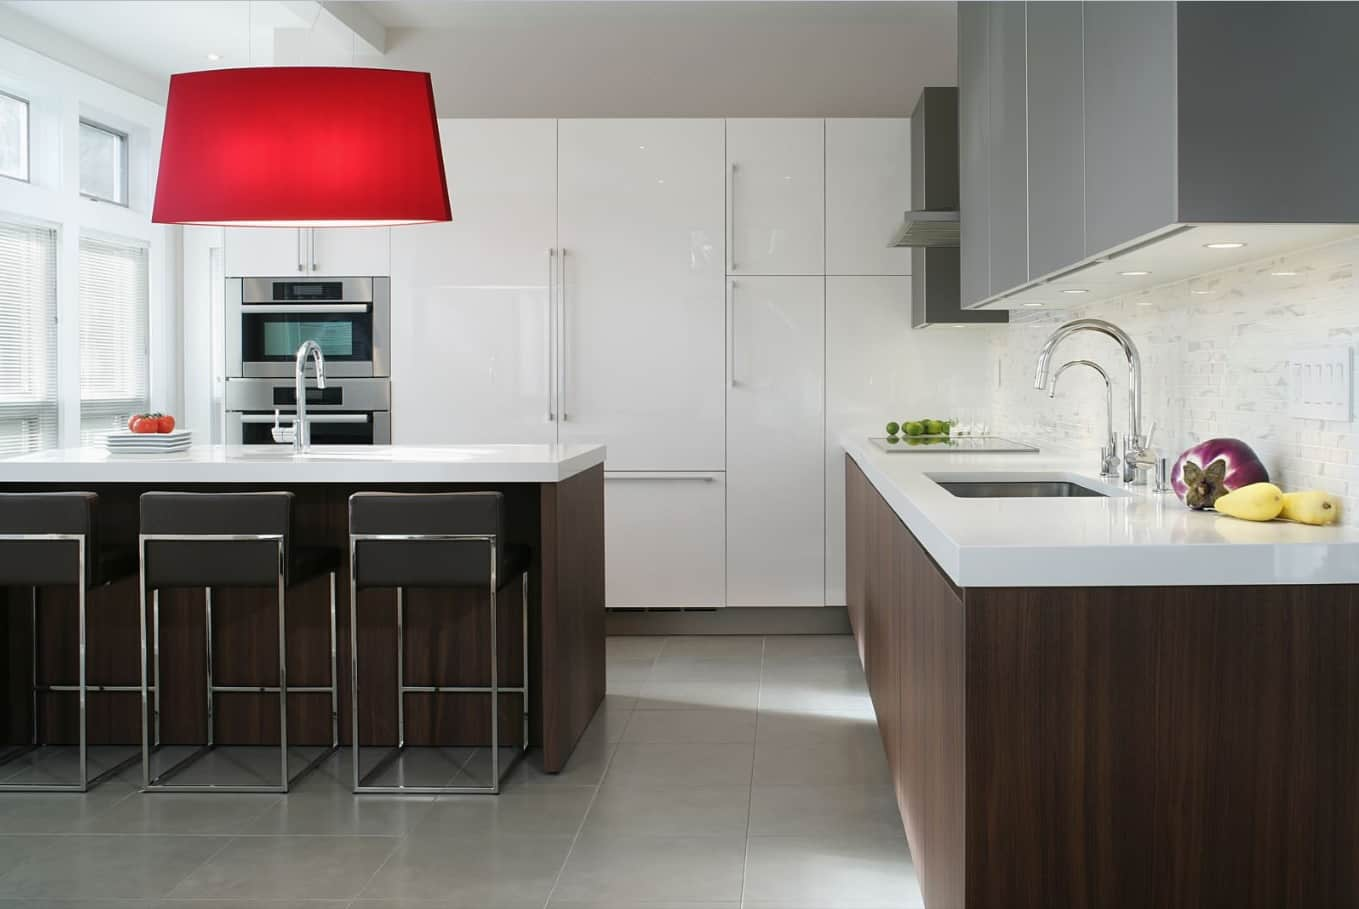 New Homeowner? Top 3 Places You Should Focus Your Design Efforts. Red chandelier and dark oak furniture facades at the casual kitchen